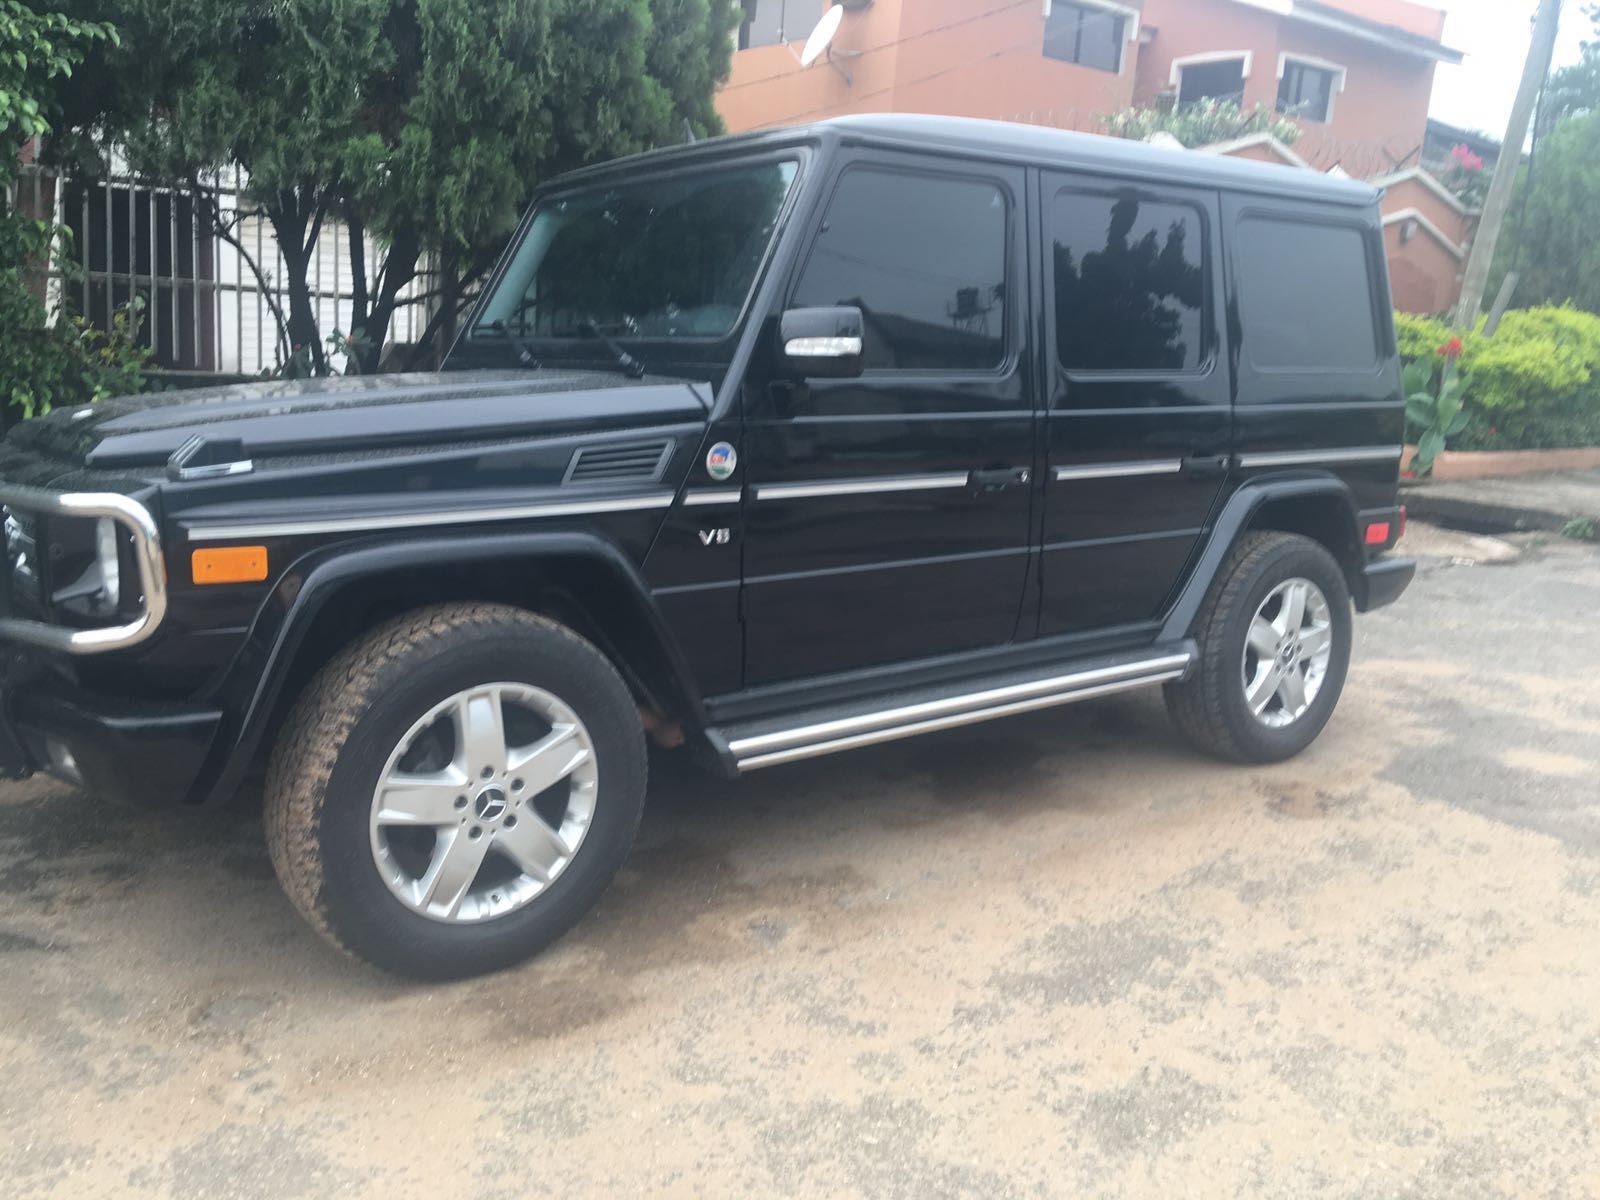 clean toks 2005 mb g wagon g500 limited grand edition for sale 12m negotiable autos nigeria. Black Bedroom Furniture Sets. Home Design Ideas